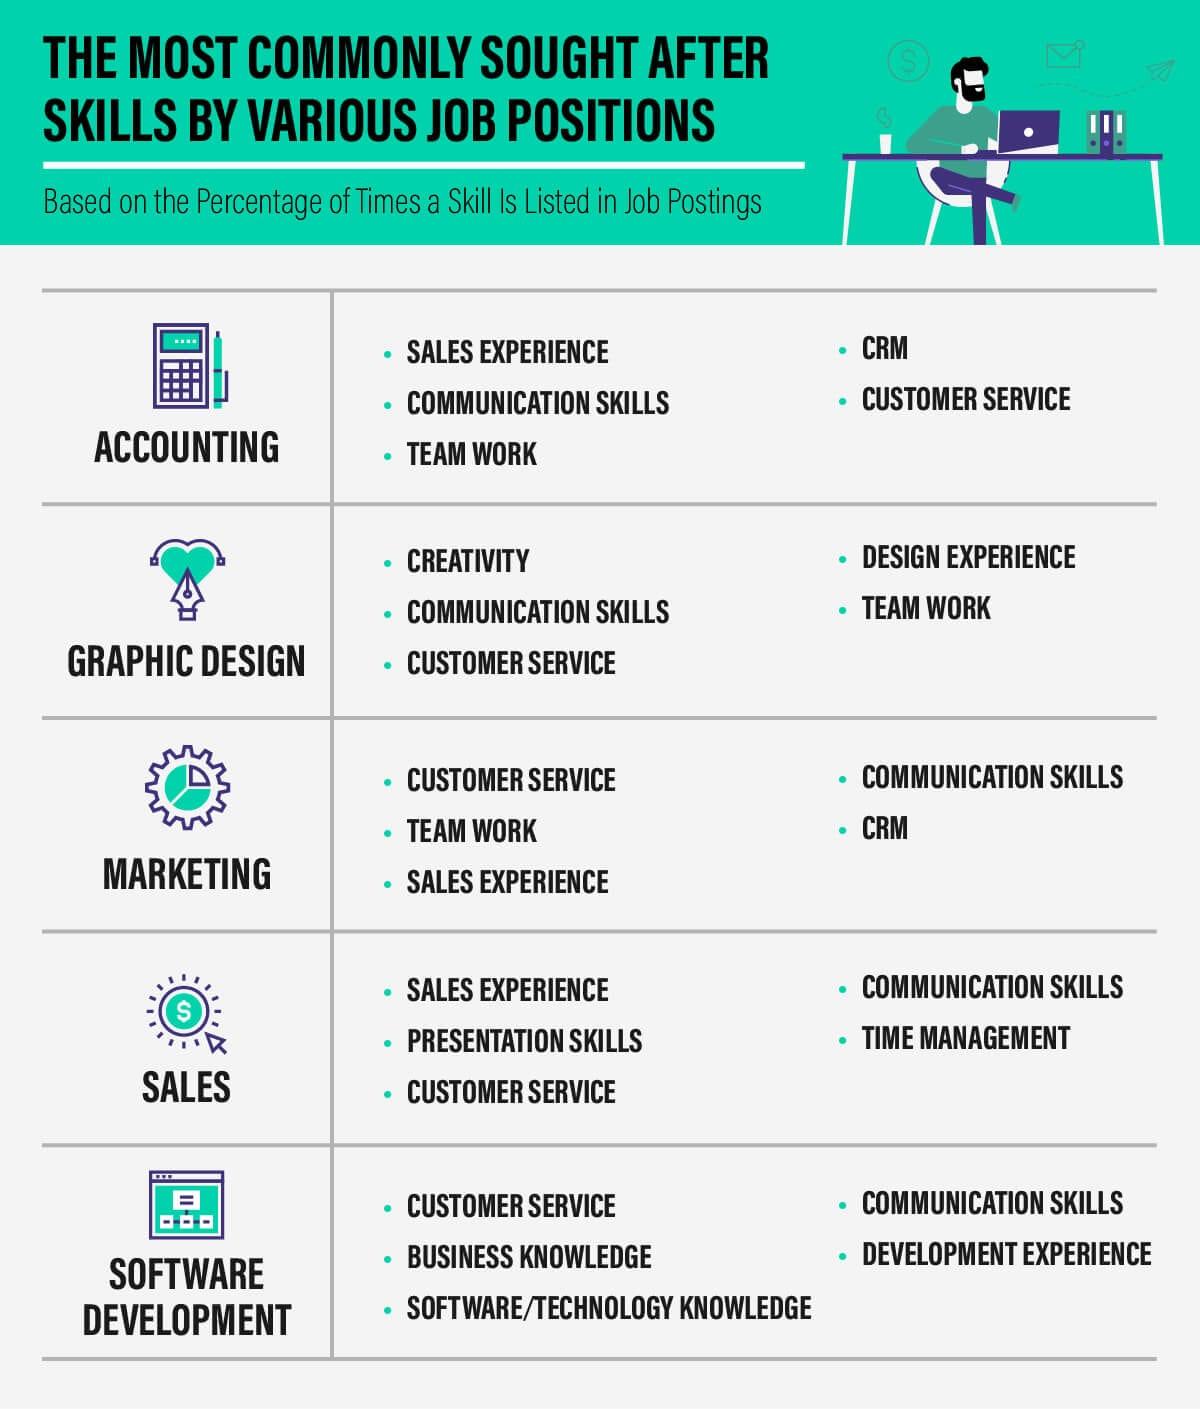 Graphic: Most commonly sought after skills by job position